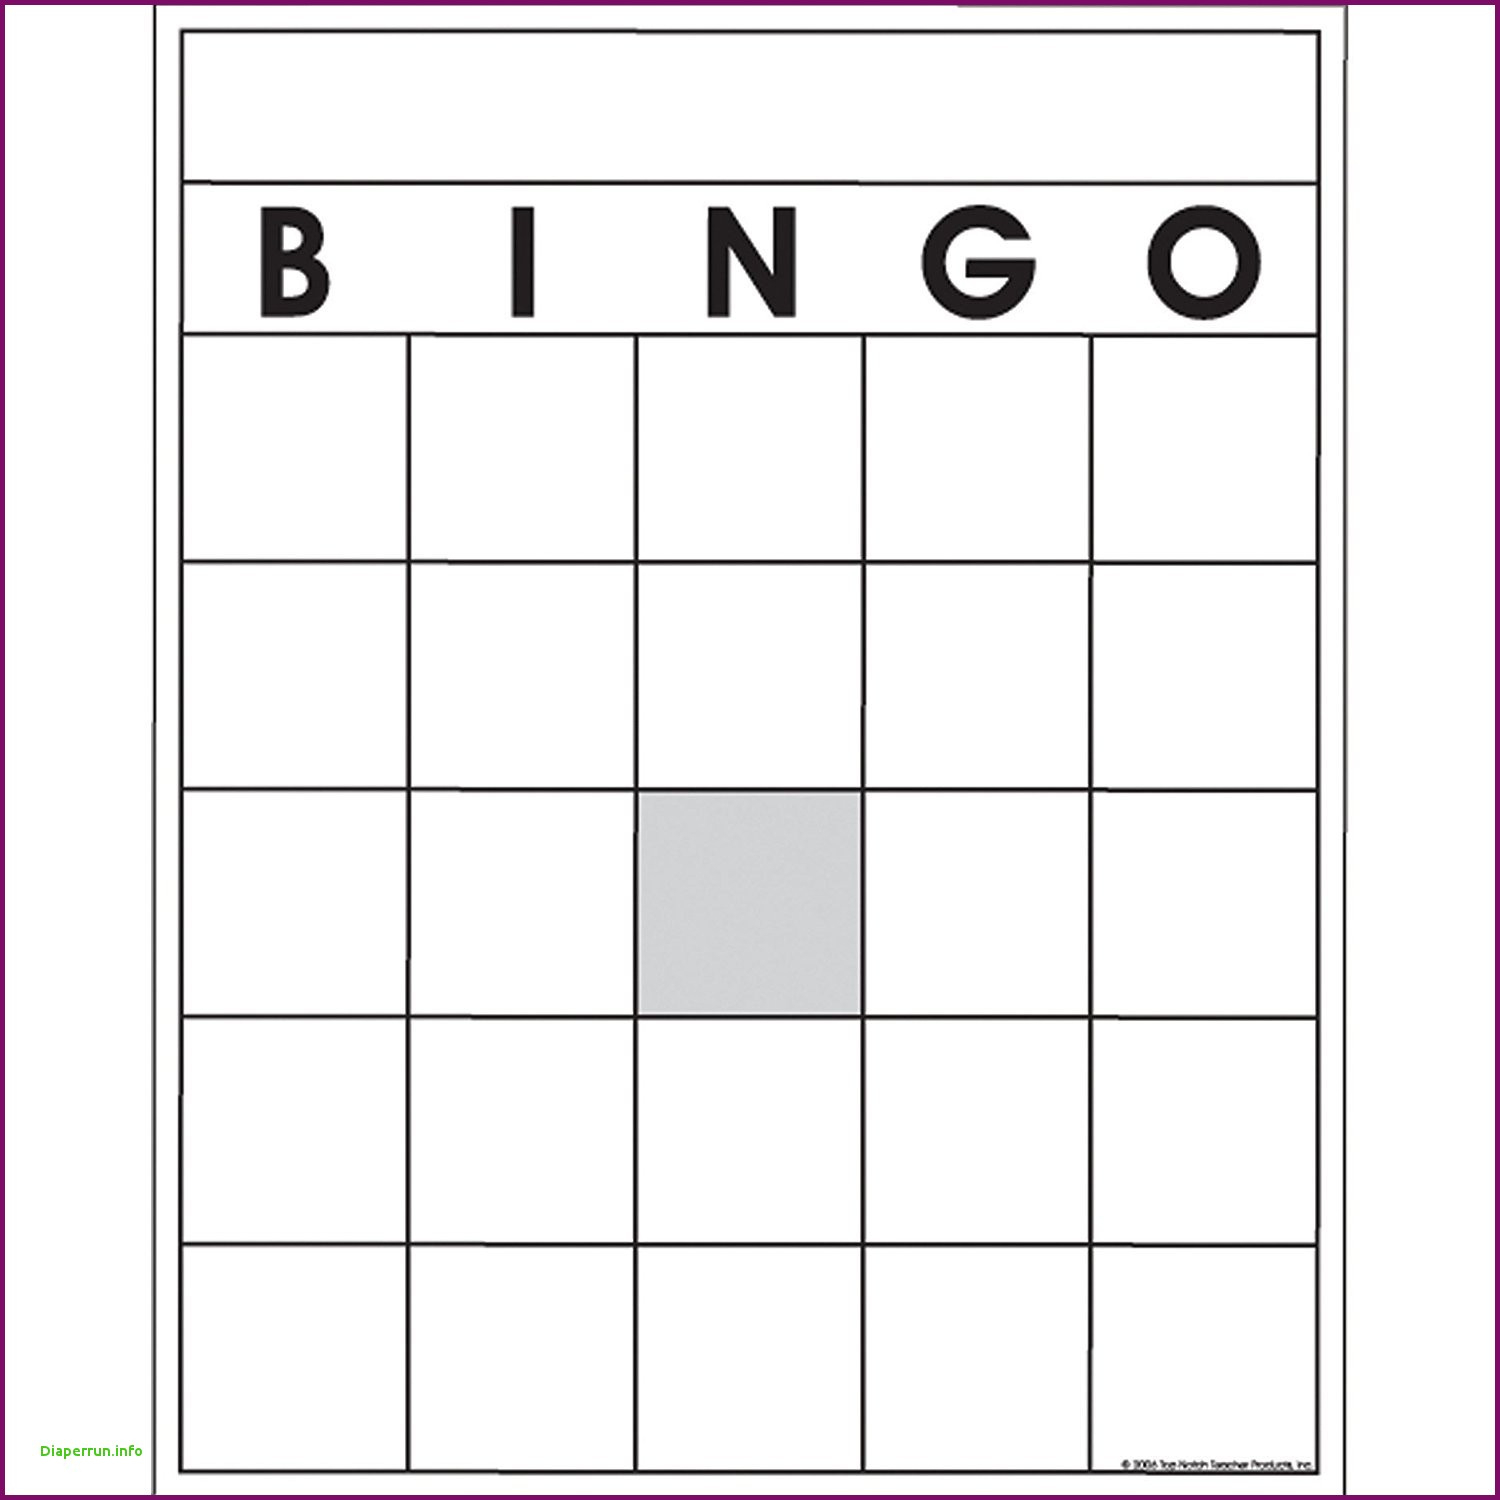 Bingo Spreadsheet Template Within Bingo Spreadsheet Luxury Elegant Ice Breaker Bingo Template – My